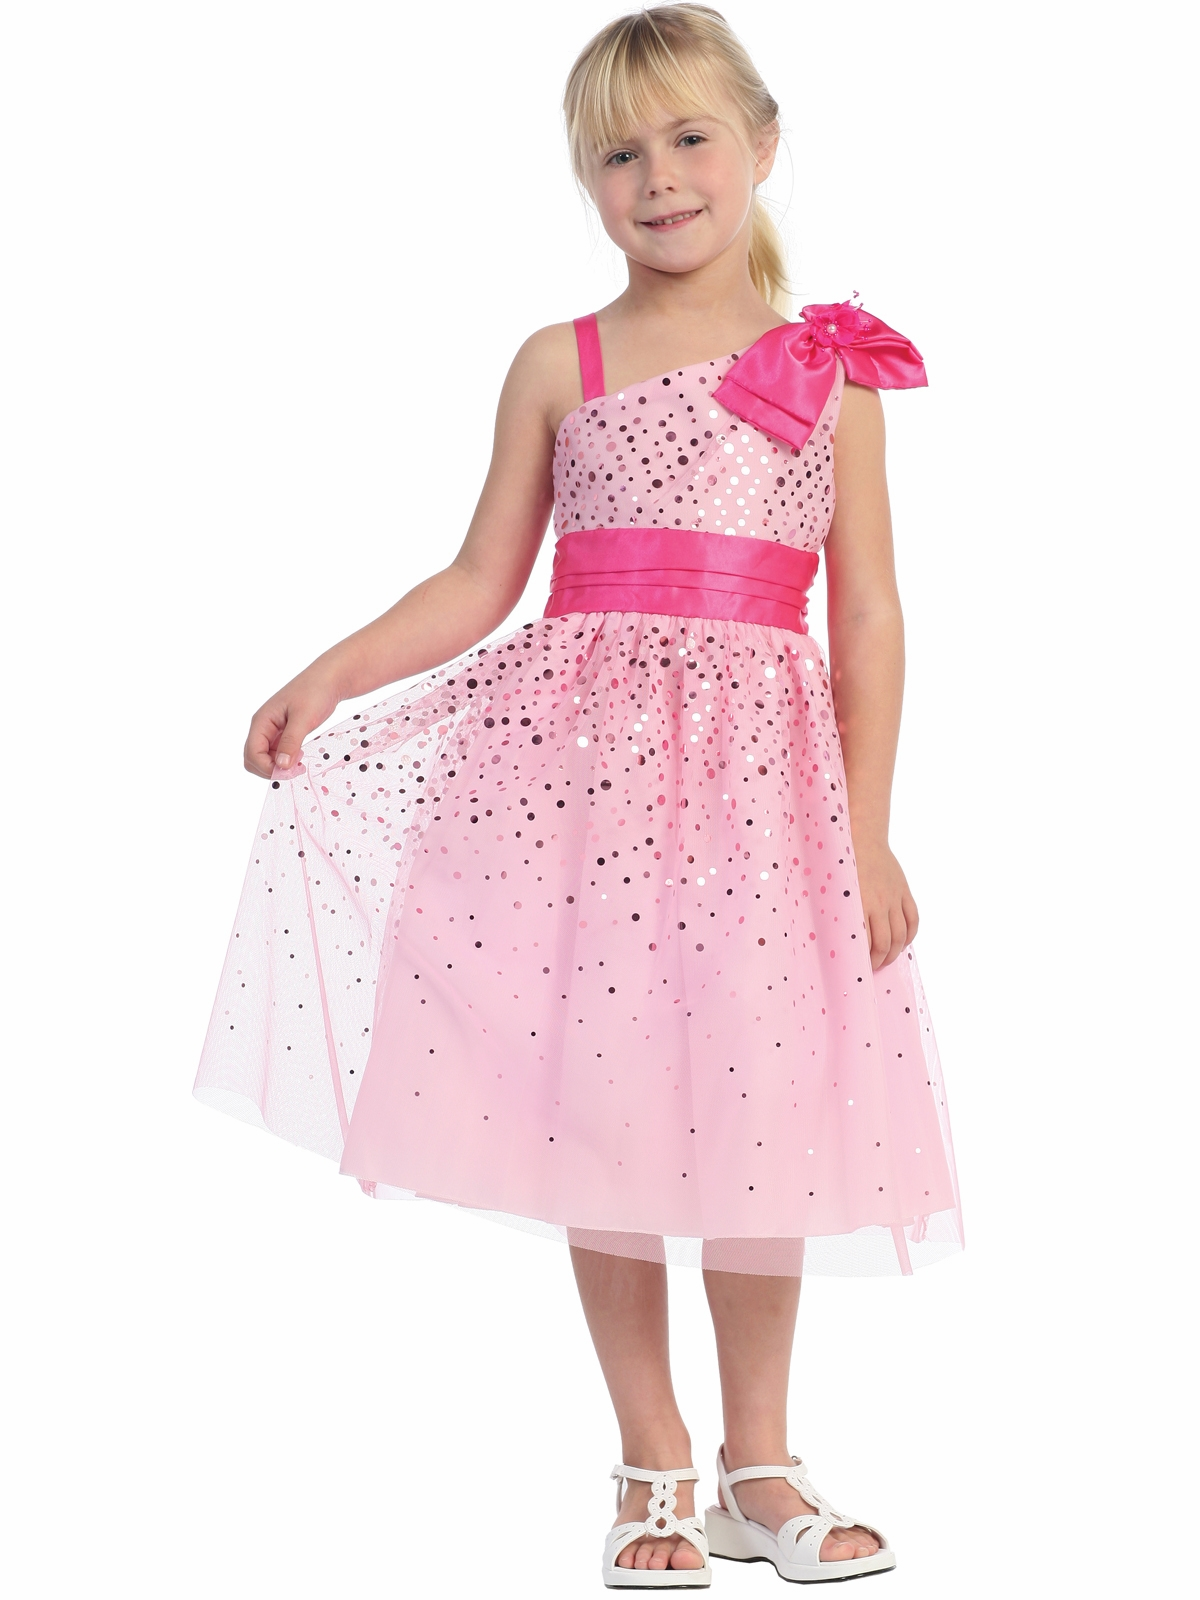 Girls Spring Dresses Filter. Find easy-to-wear cute spring dresses at Sophia's Style Boutique. Whatever the occasion, style or color find girls spring dresses for all ages at prices that won't break the bank. Add girls shoes and hair accessories and she is going to be dressed for comfort and fun.